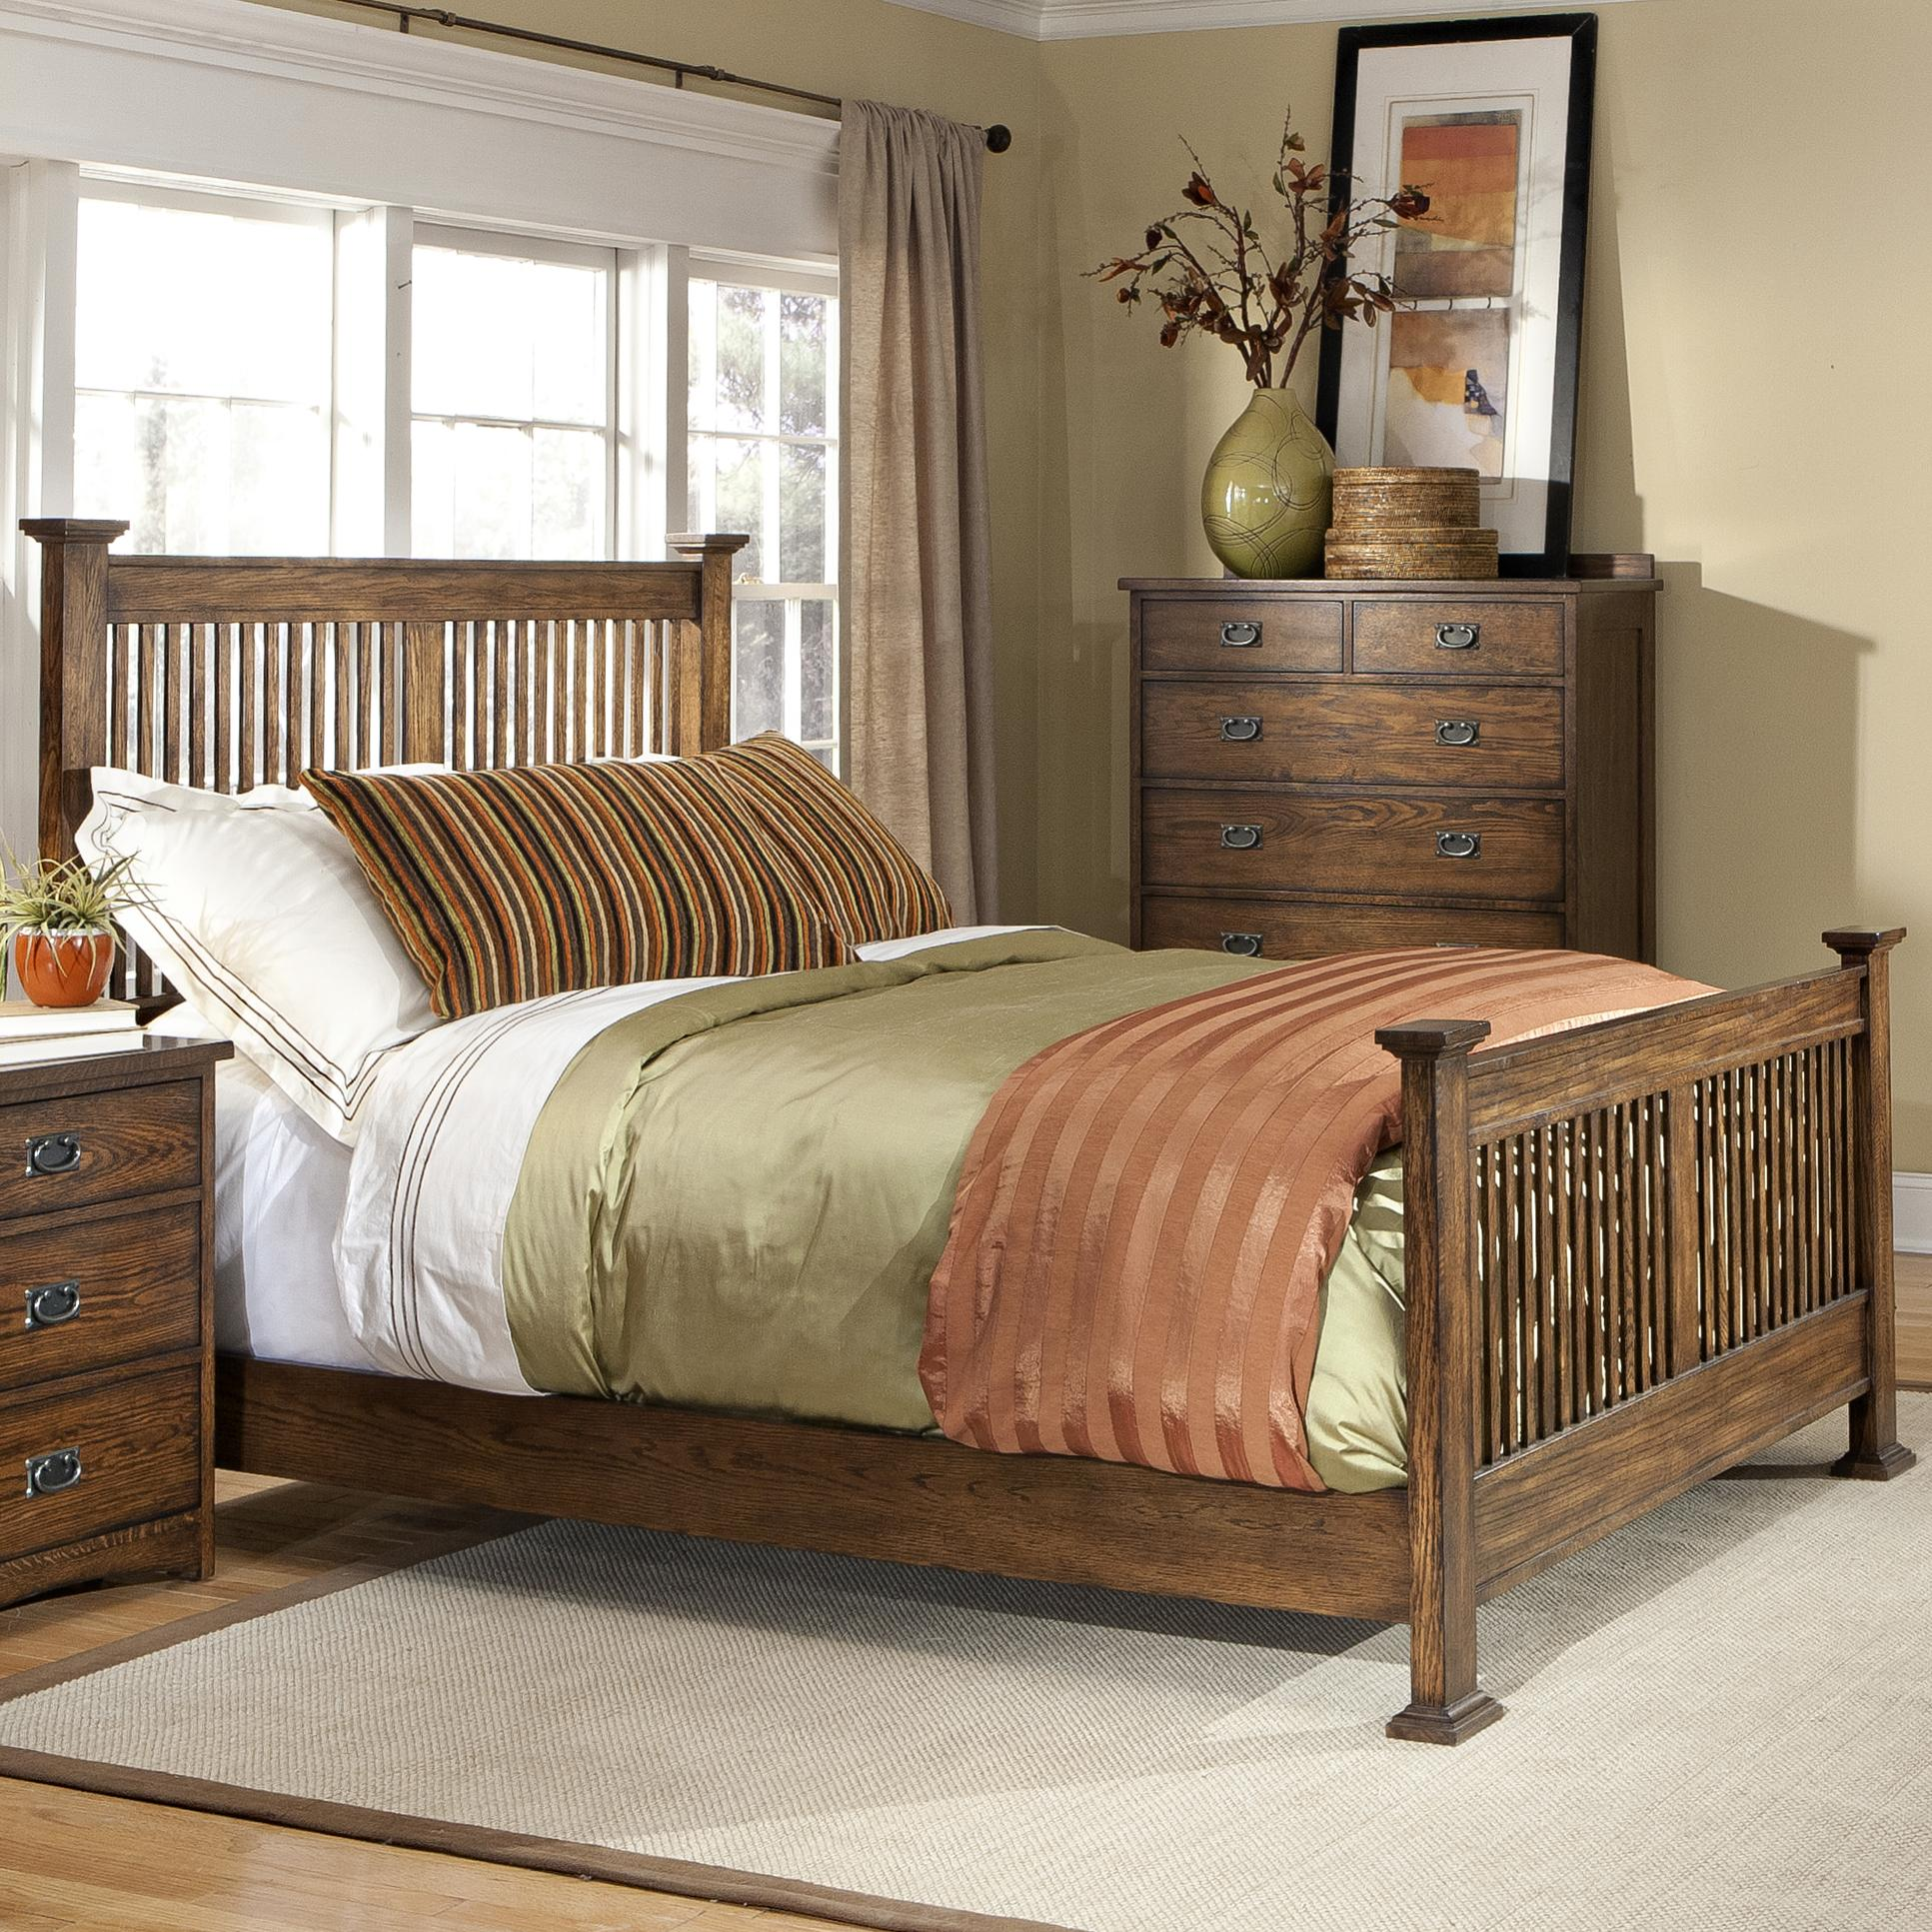 Vfm Signature Oak Park California King Panel Bed With Slat Headboard And Footboard Virginia Furniture Market Panel Beds